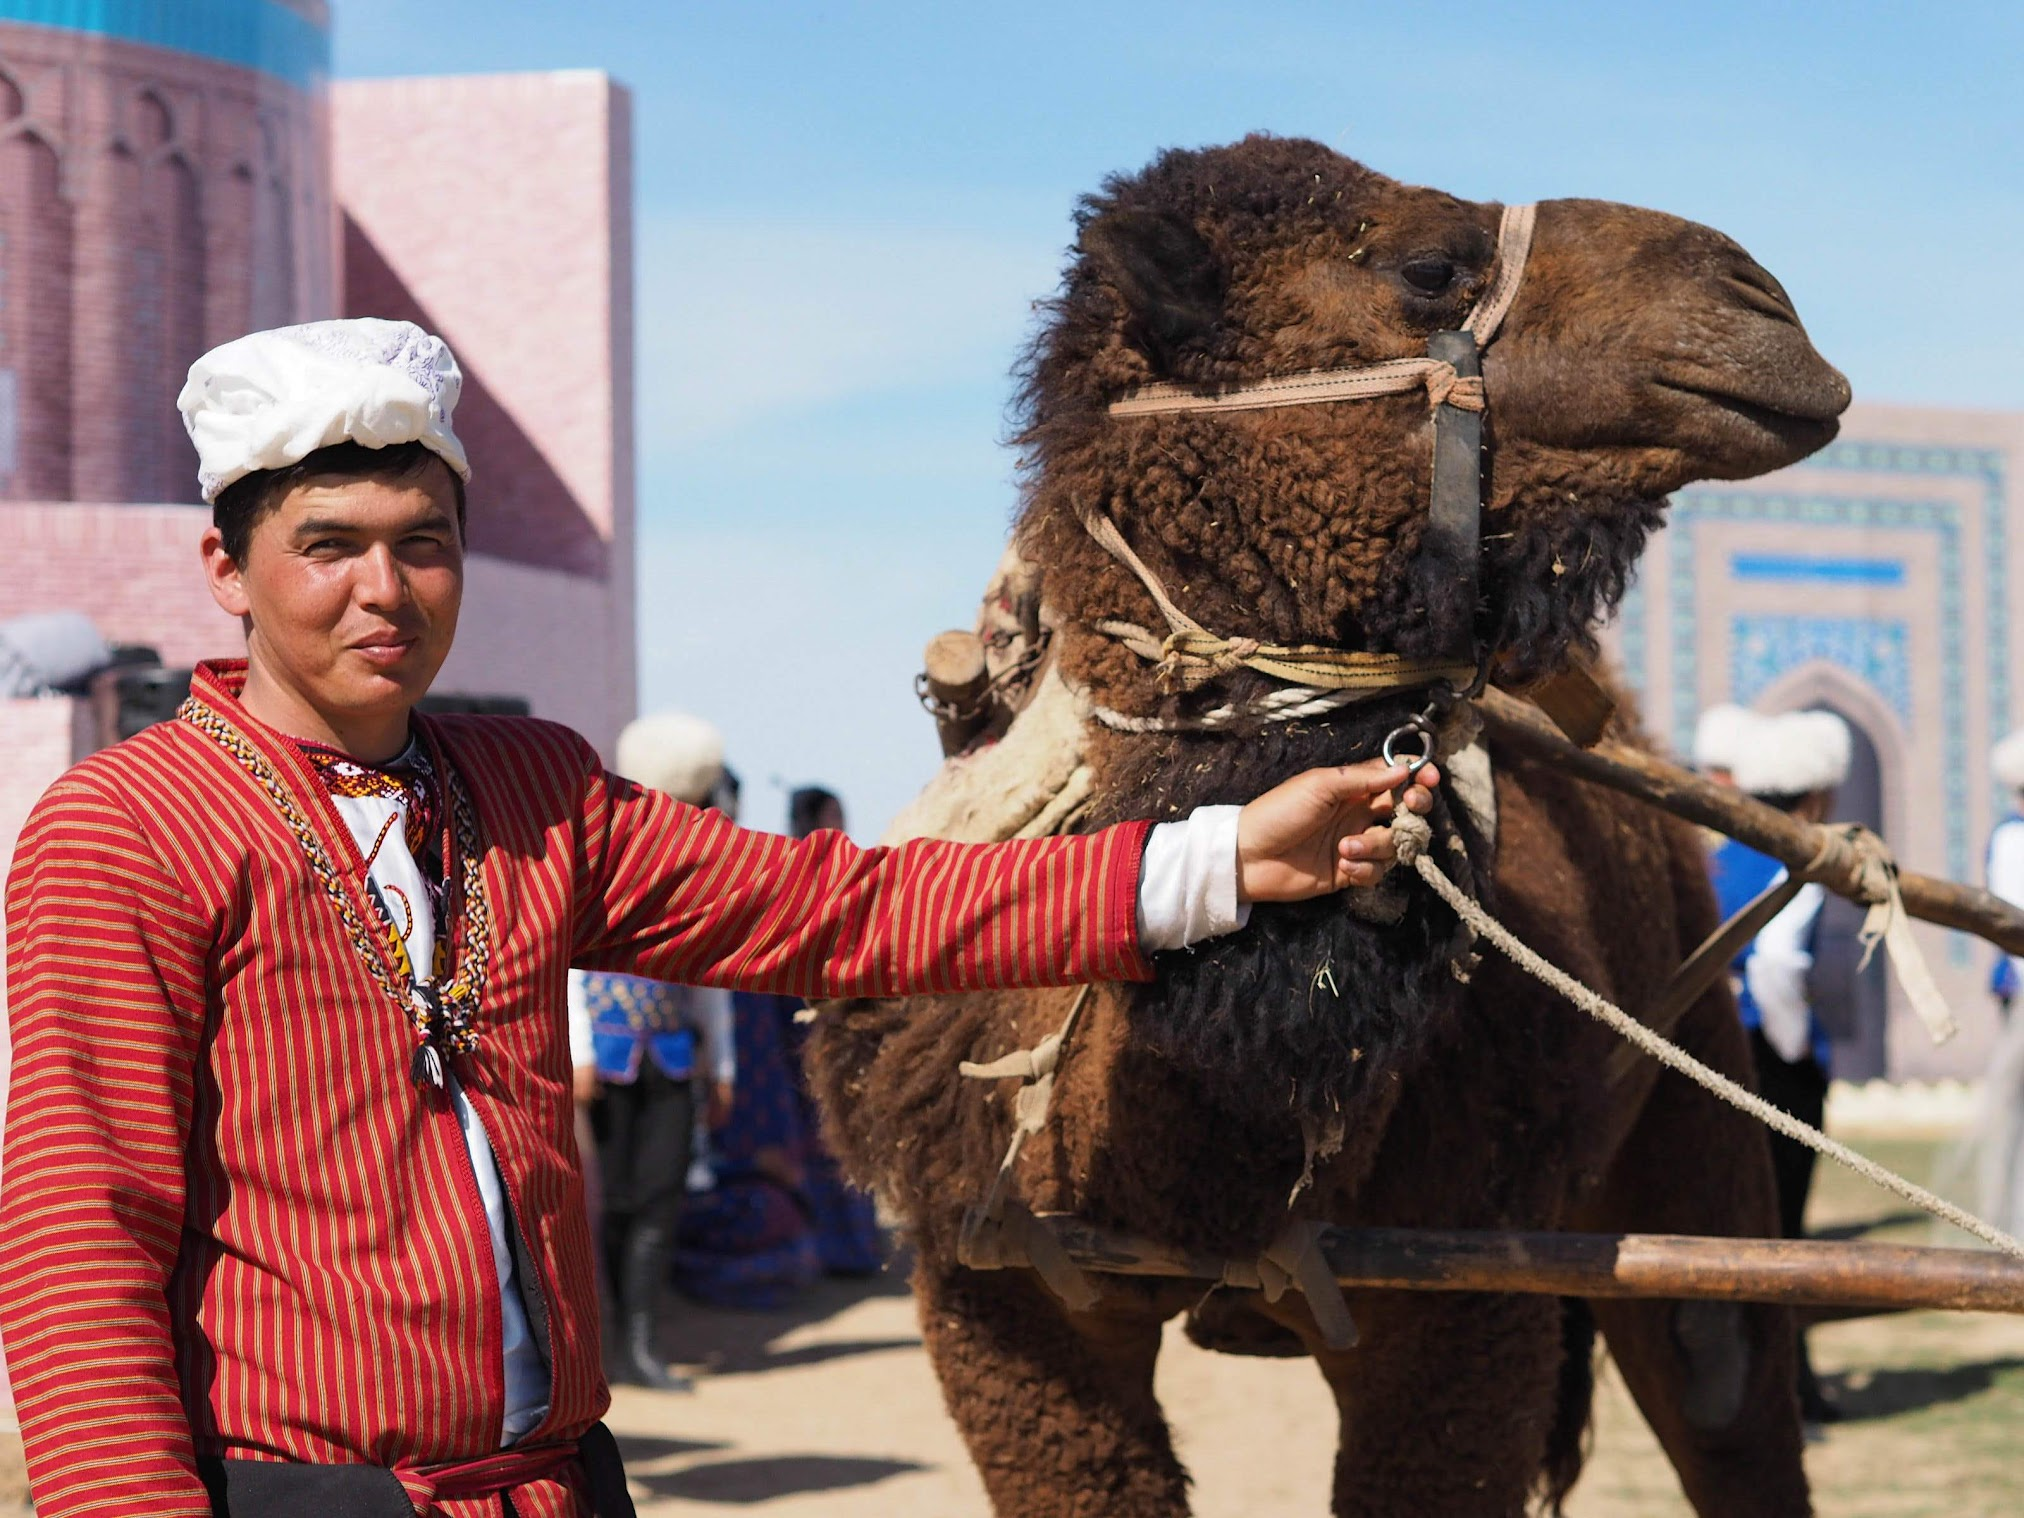 A guy and his camel (also the most boring caption ever).